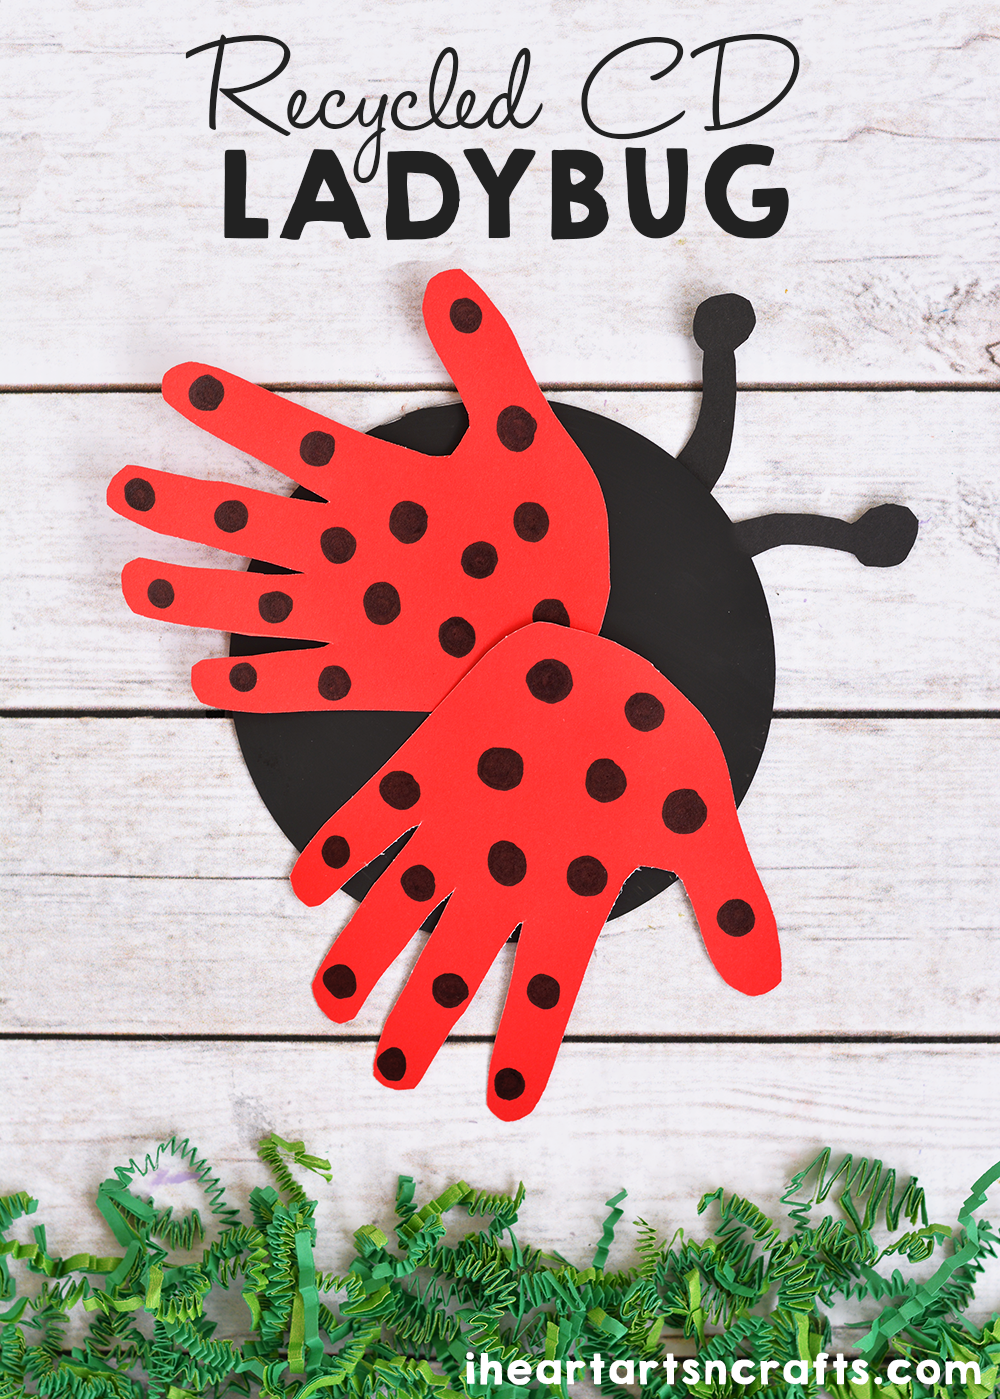 Recycled CD Ladybug Craft For Kids #craftsforkids